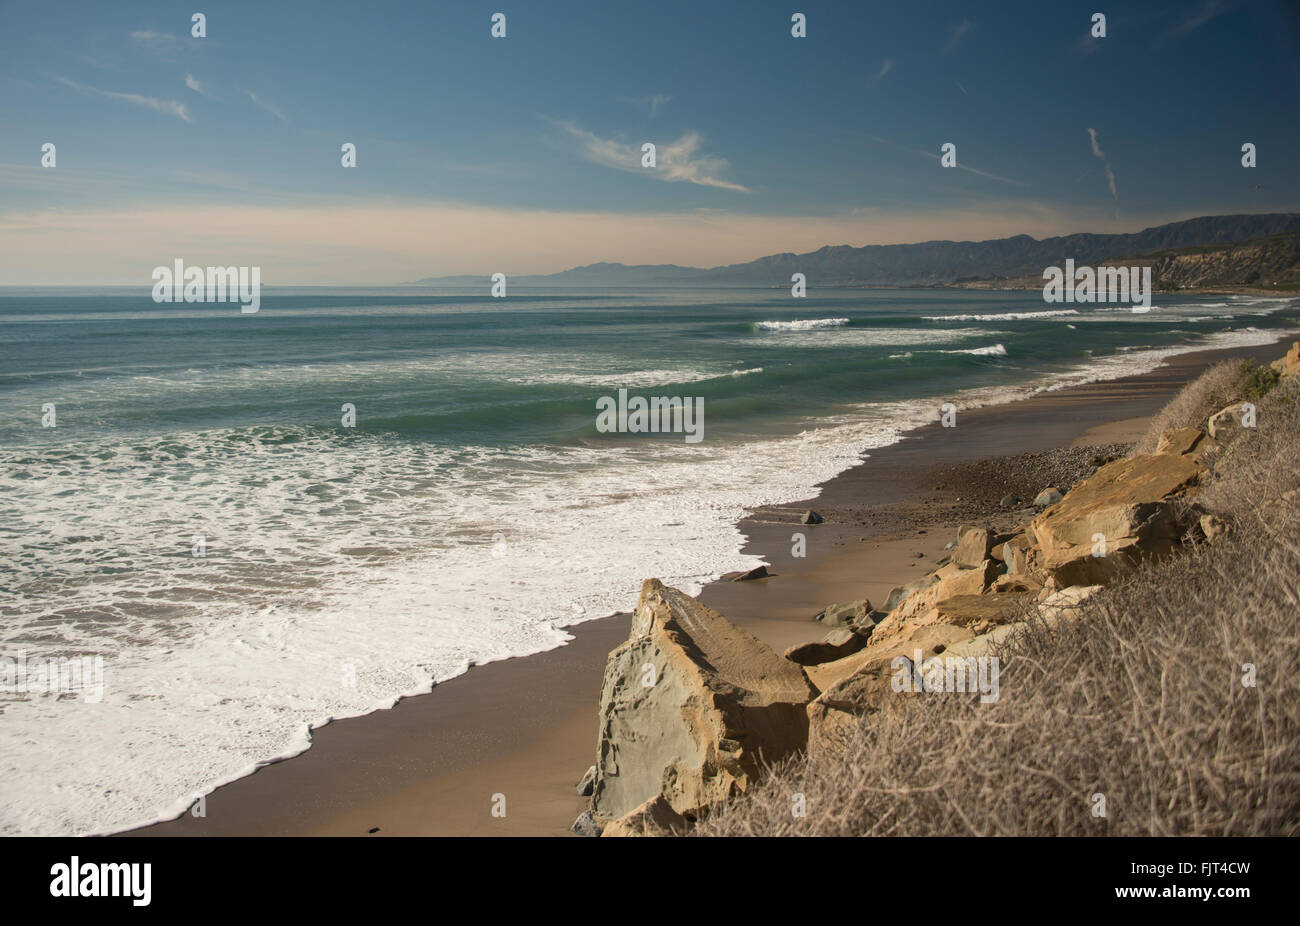 Pacific Ocean beach and coastline off PCH Route 1 near Malibu north of Los Angeles Southern California USA - Stock Image